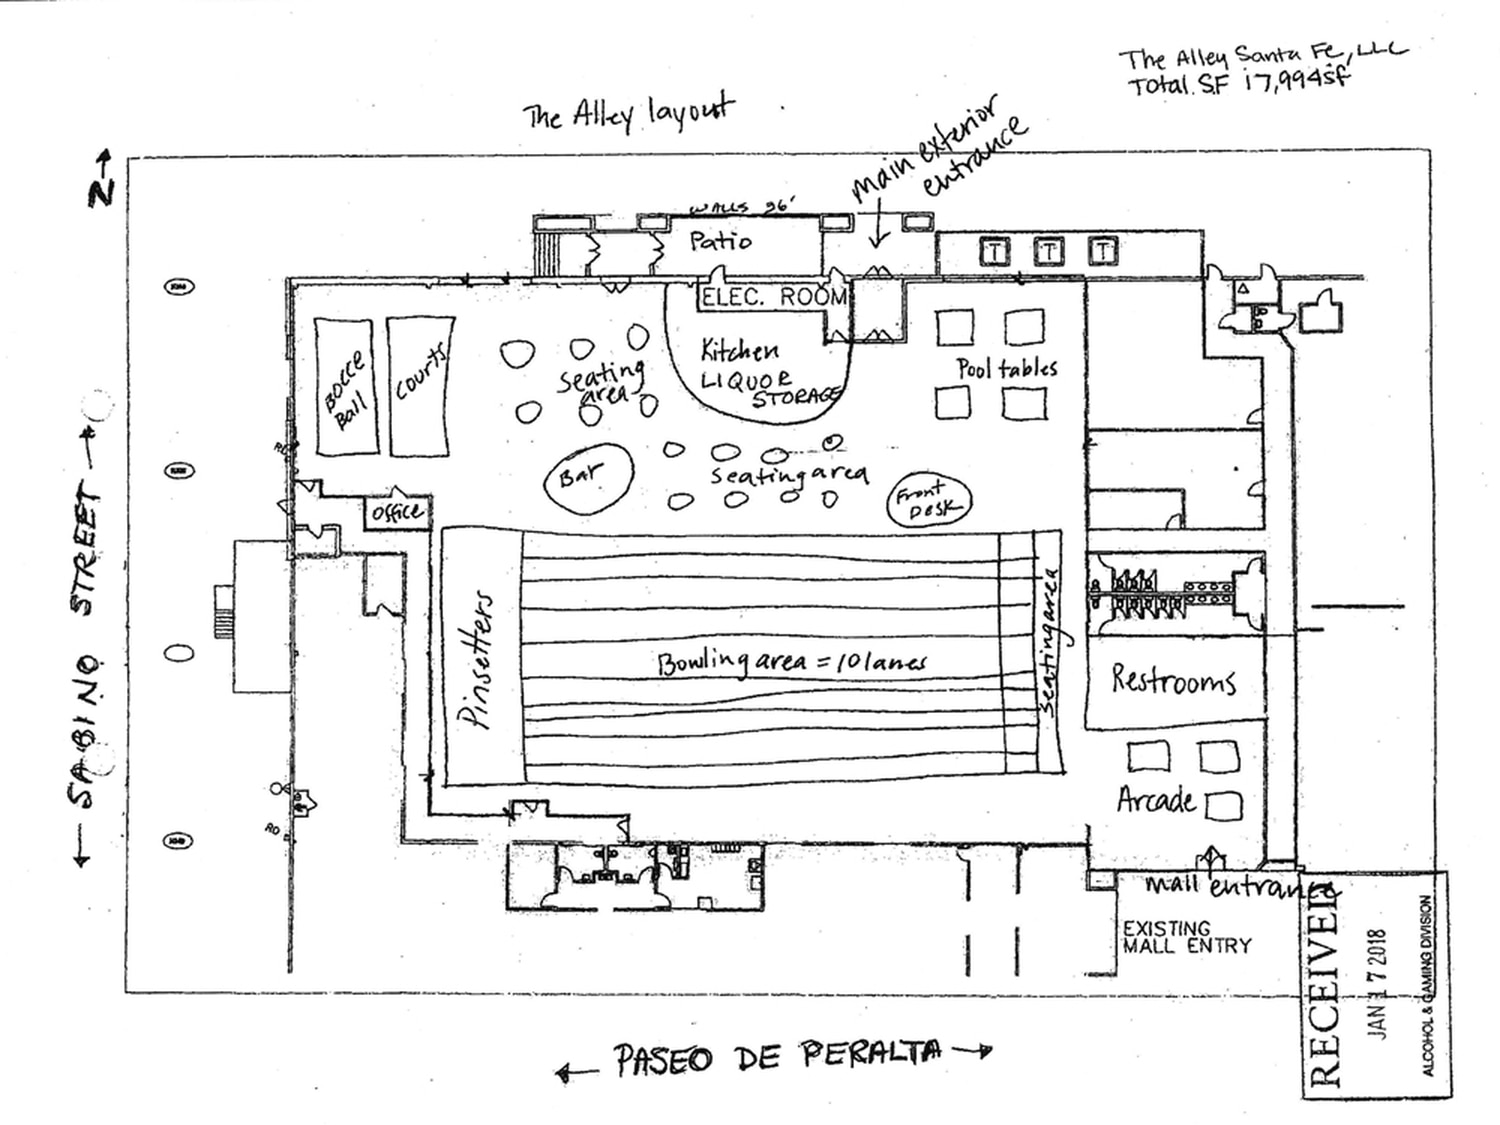 hight resolution of a layout of the alley included with the business application for a liquor license